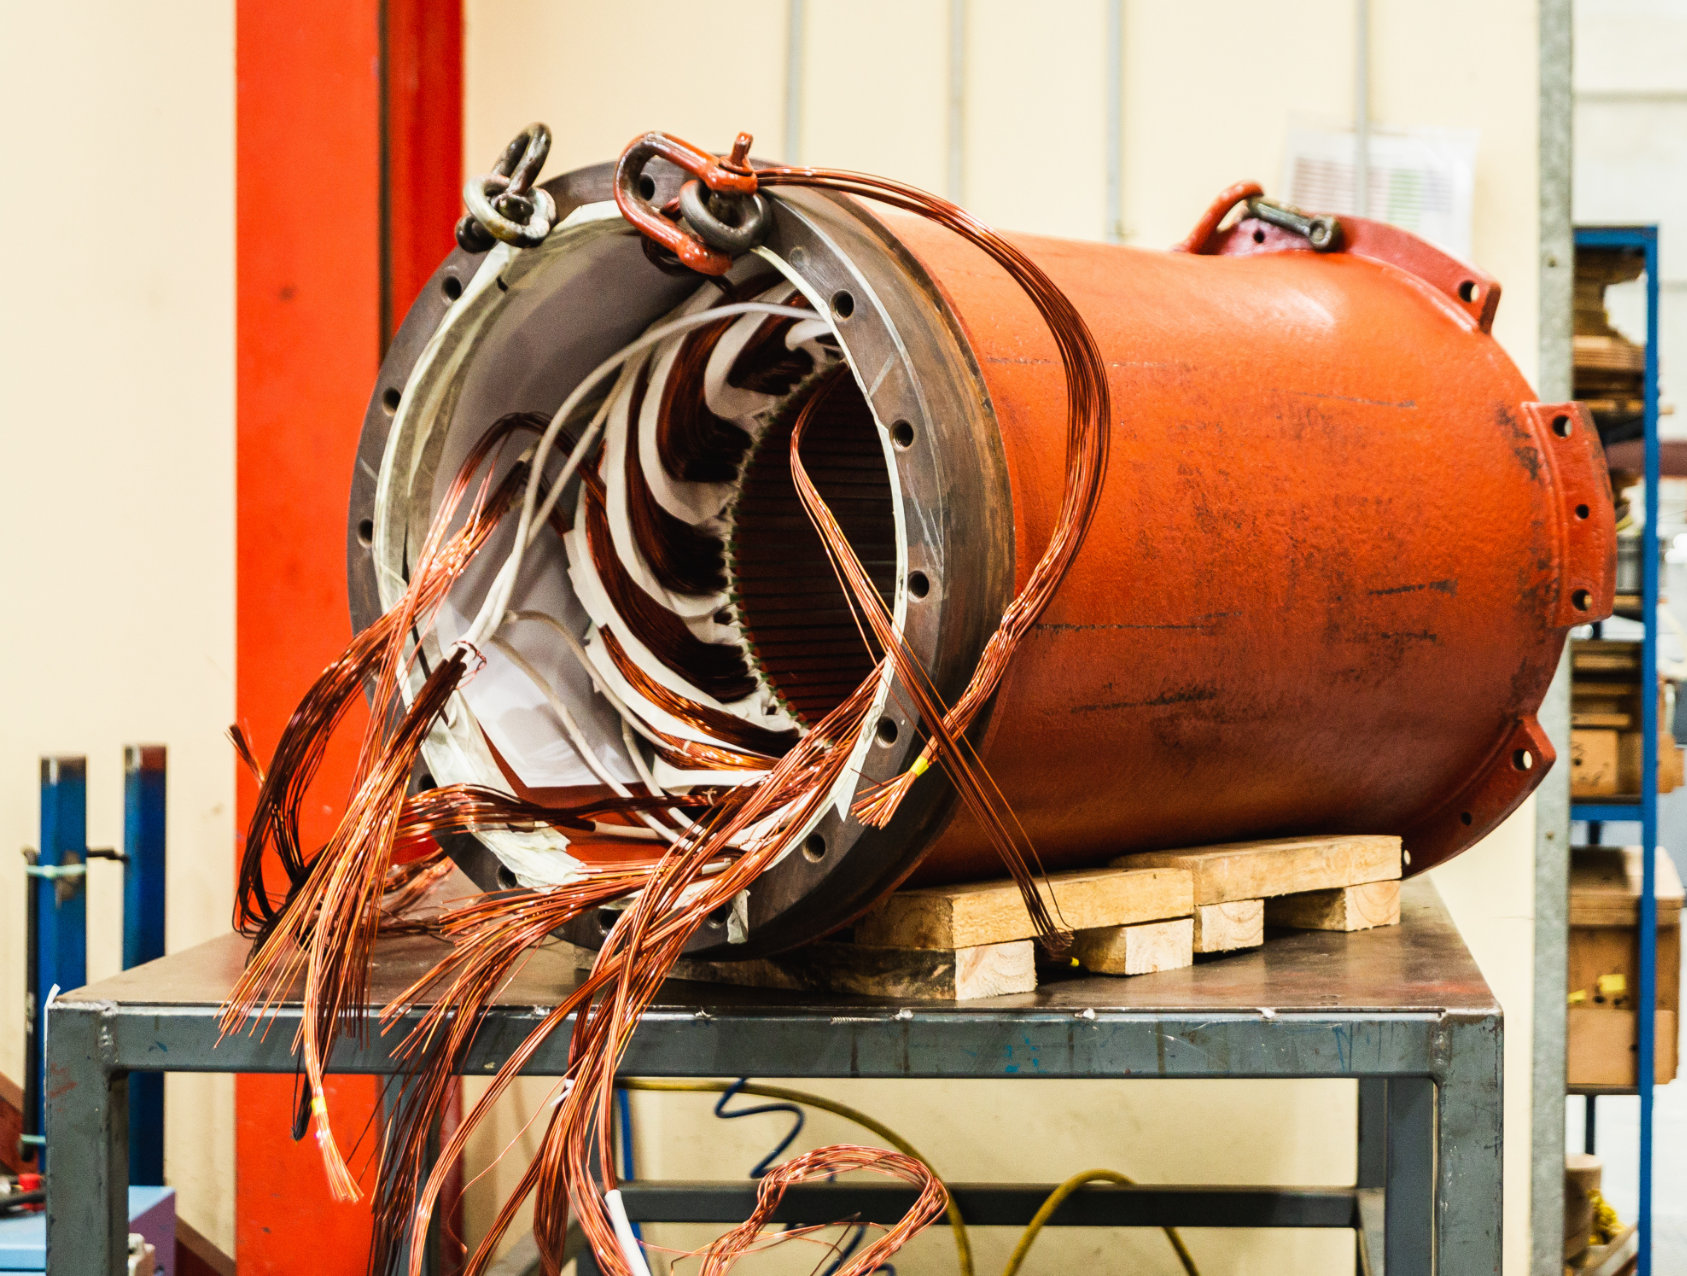 Large electric motor, partially disassembled, up on bench for repair